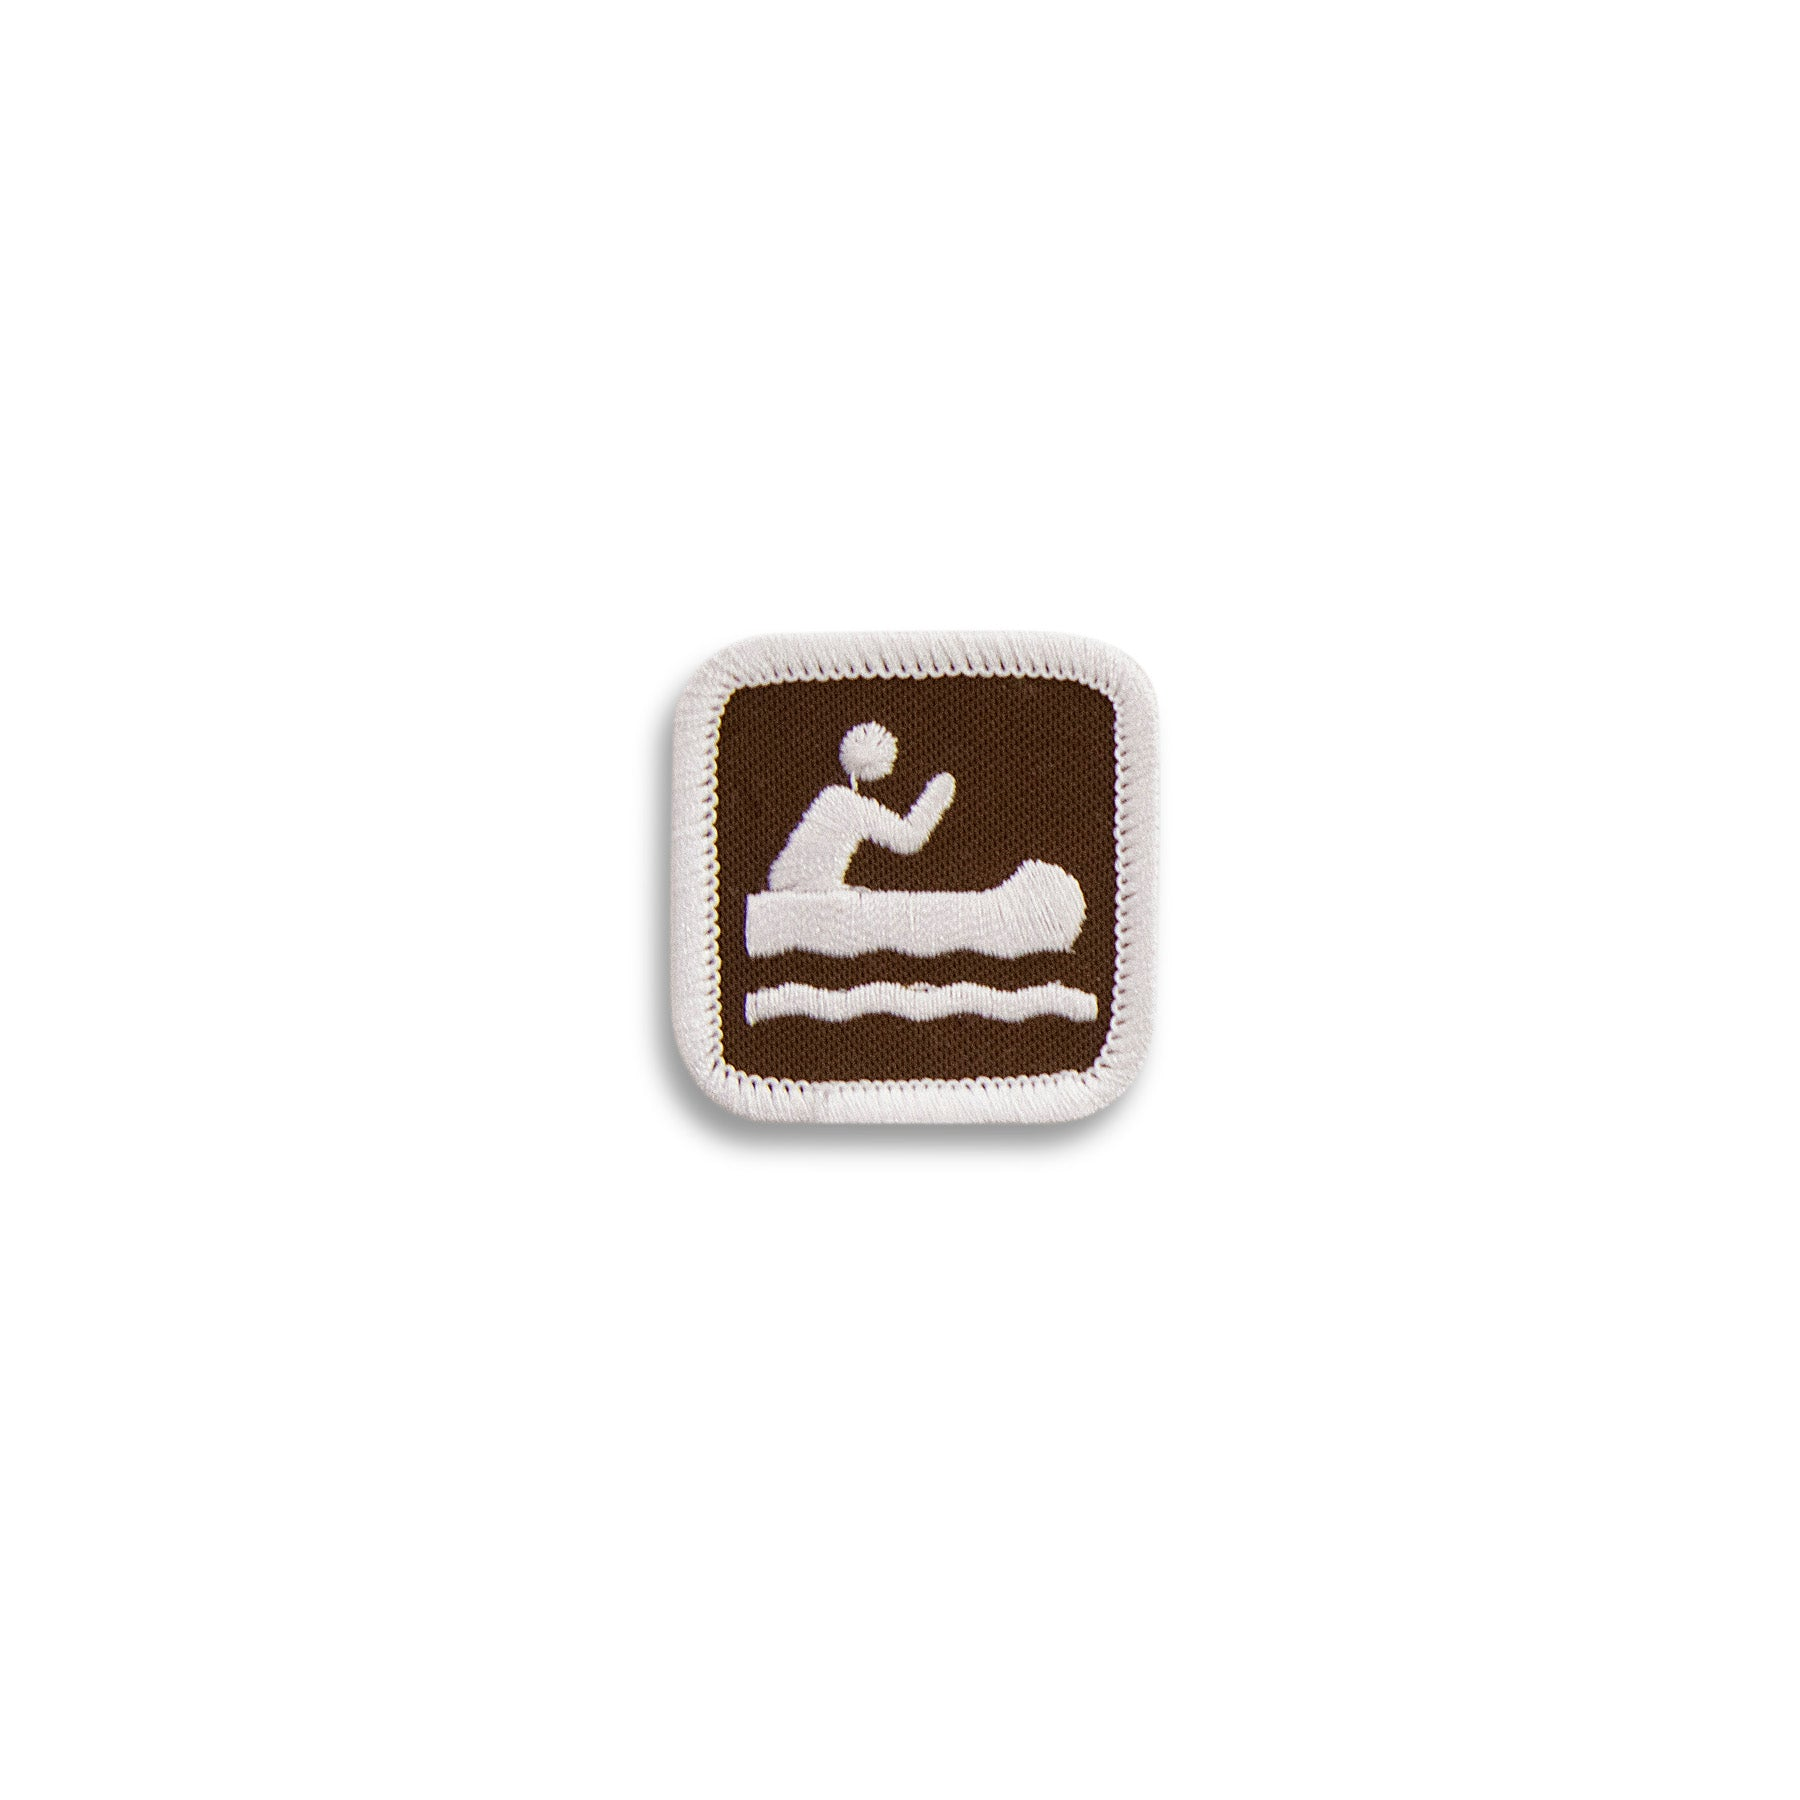 MI State Parks Peel & Stick Patch - Canoe Access